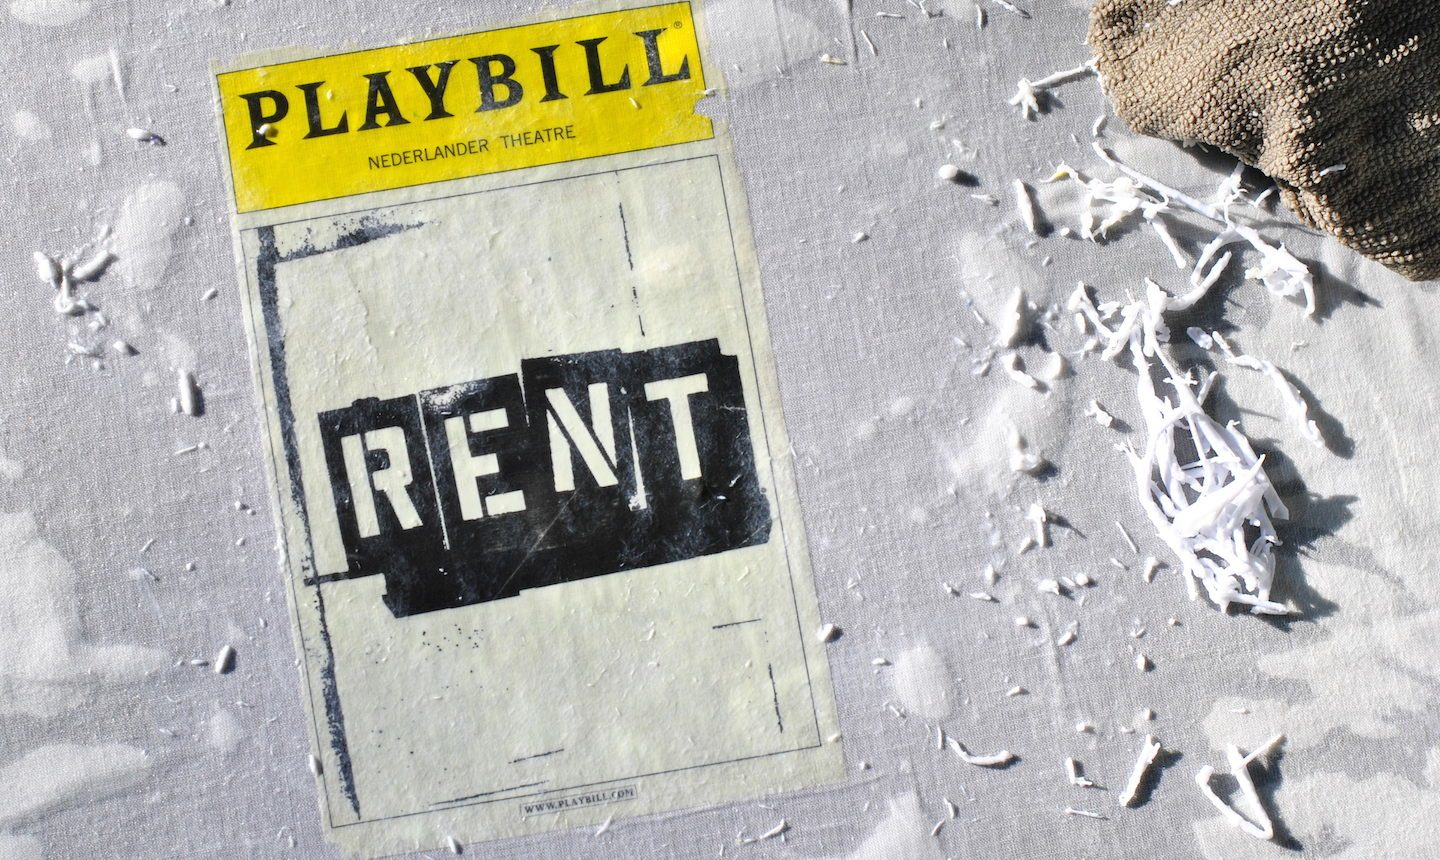 Playbill with paper rubbed off